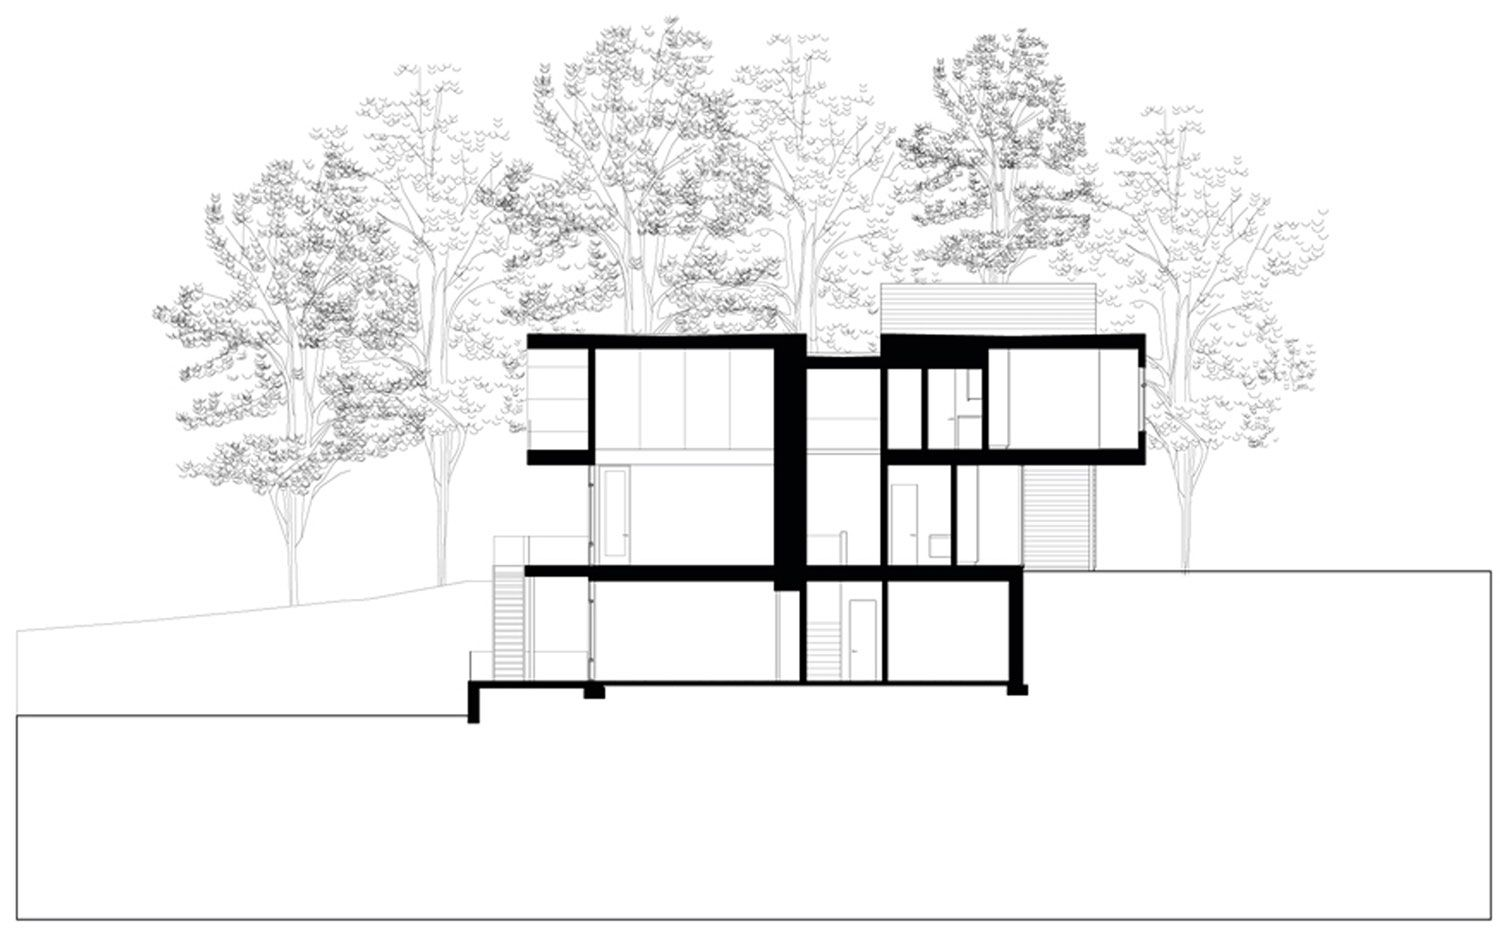 Riggins House - Section   Plans and Elevations   Pinterest